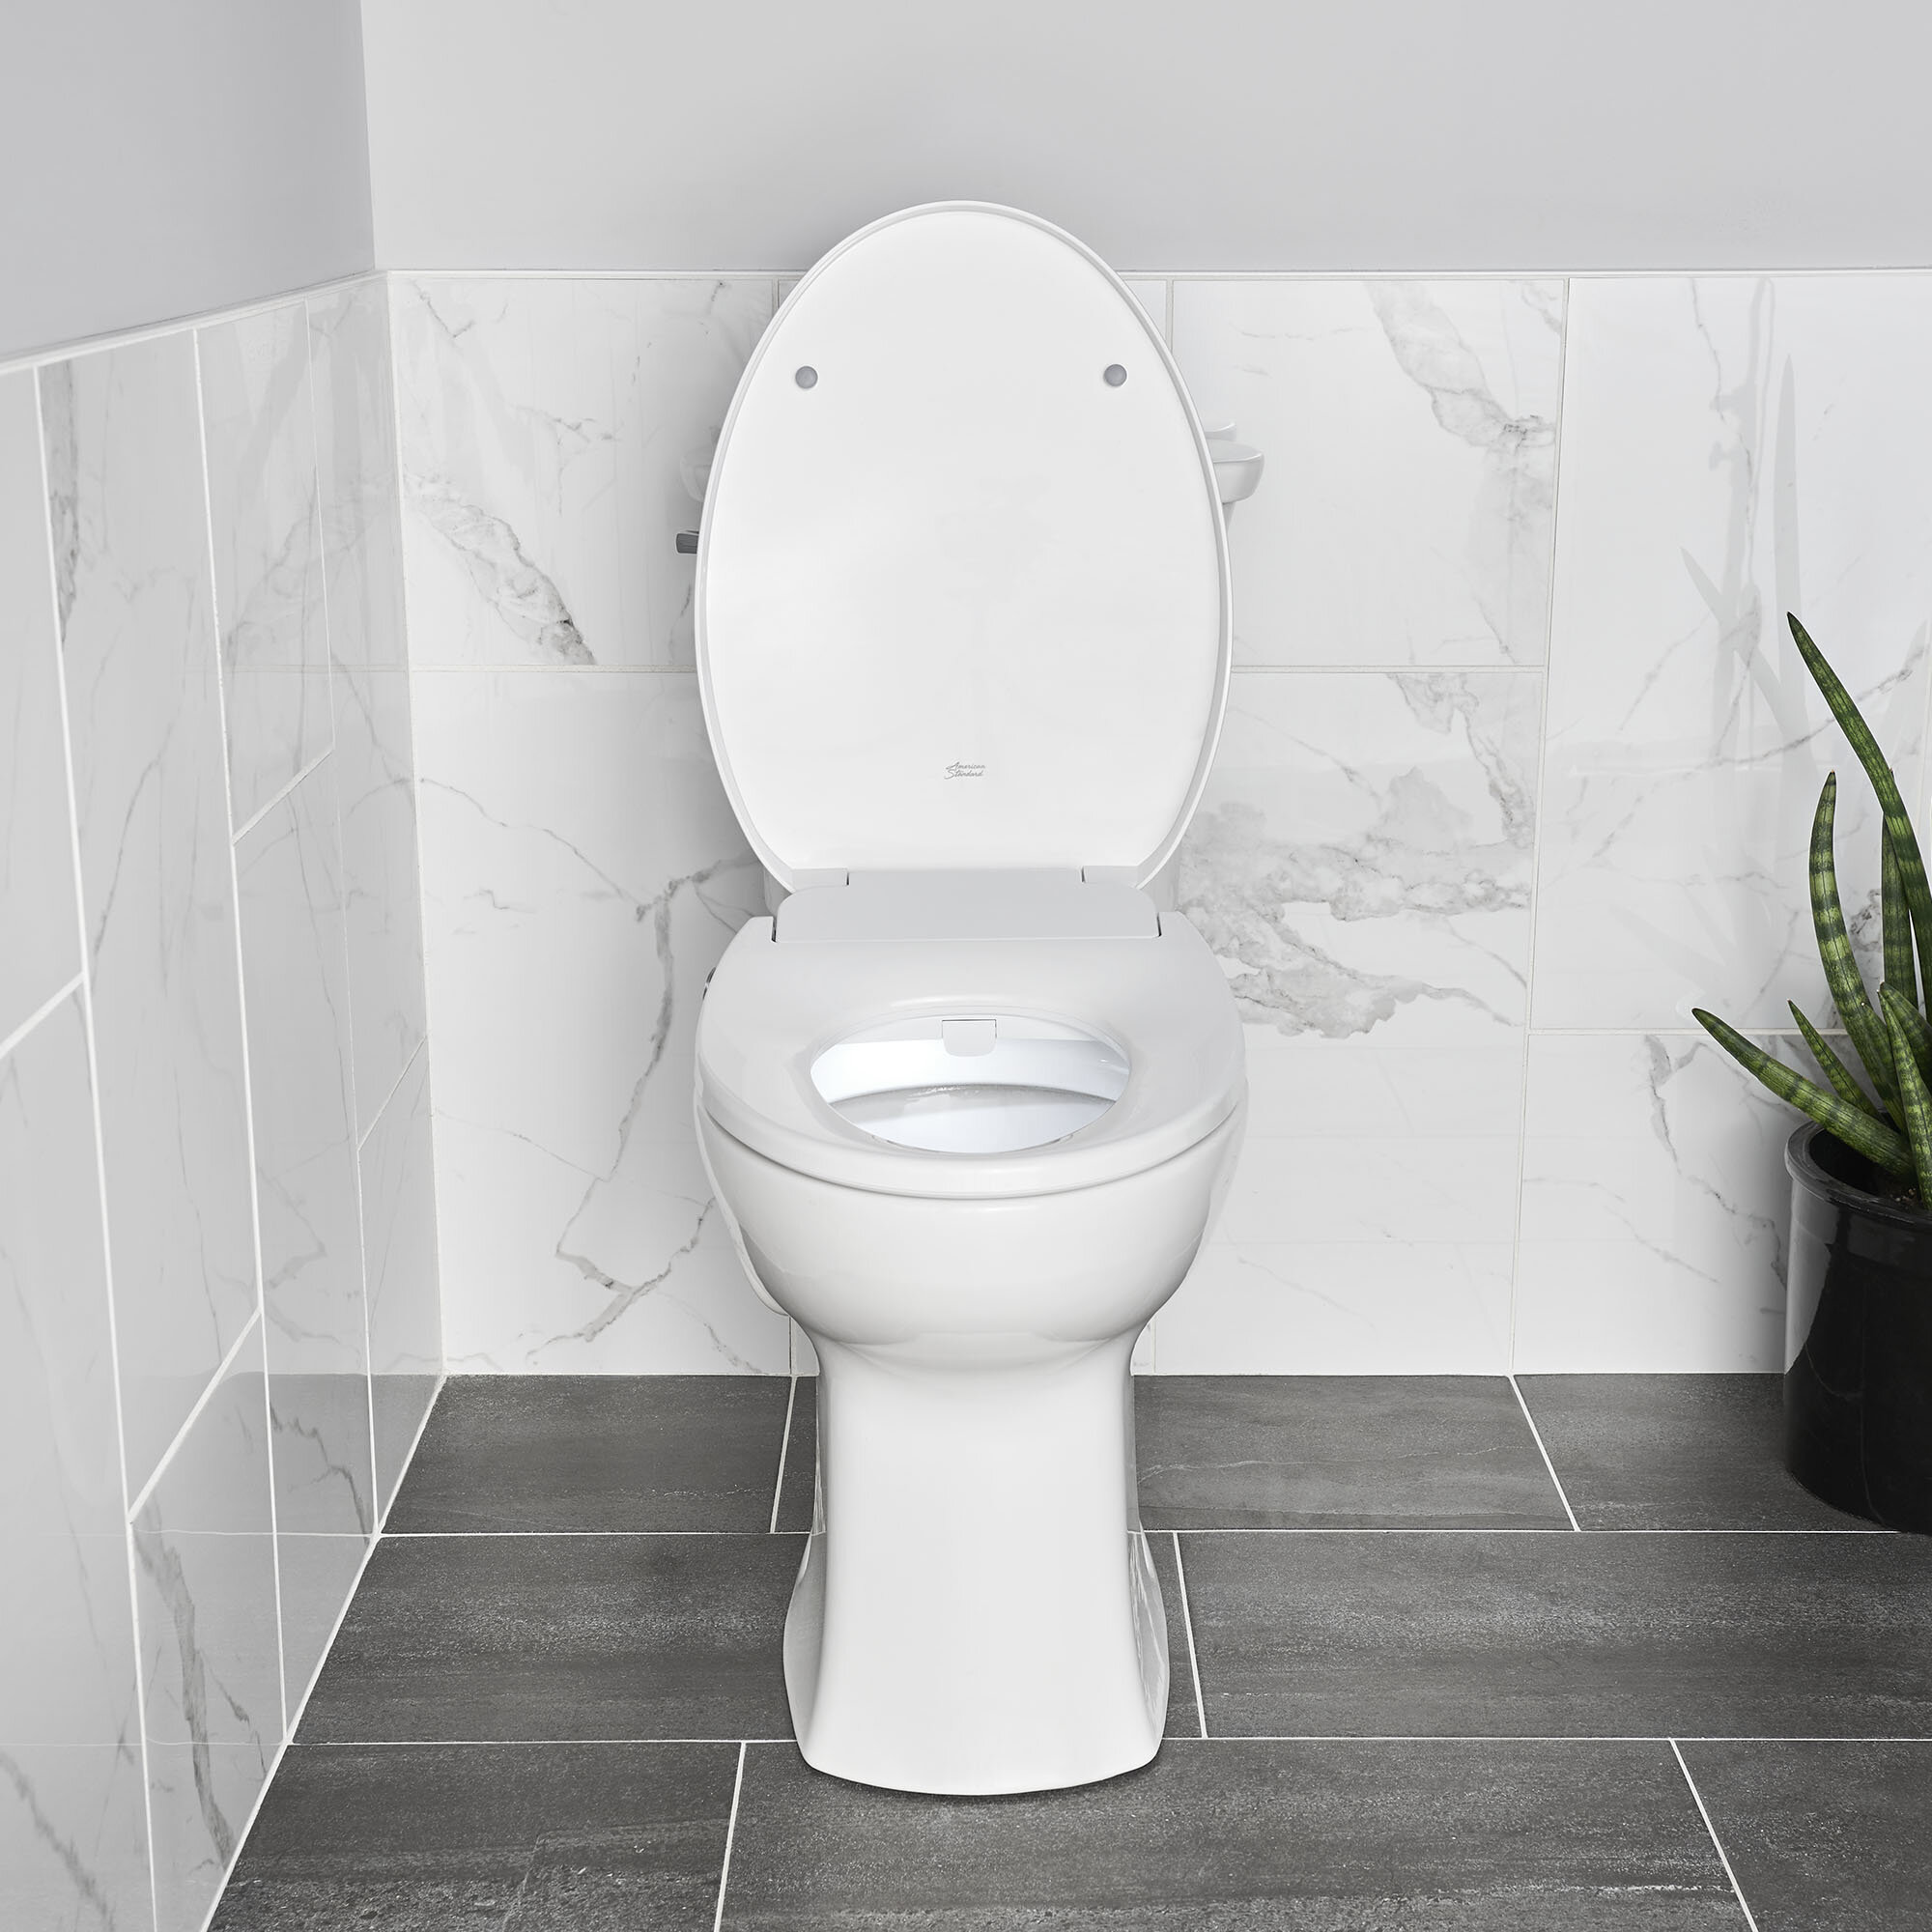 Fantastic Aquawash 2 0 Manual Spalet Elongated Toilet Seat Bidet Machost Co Dining Chair Design Ideas Machostcouk